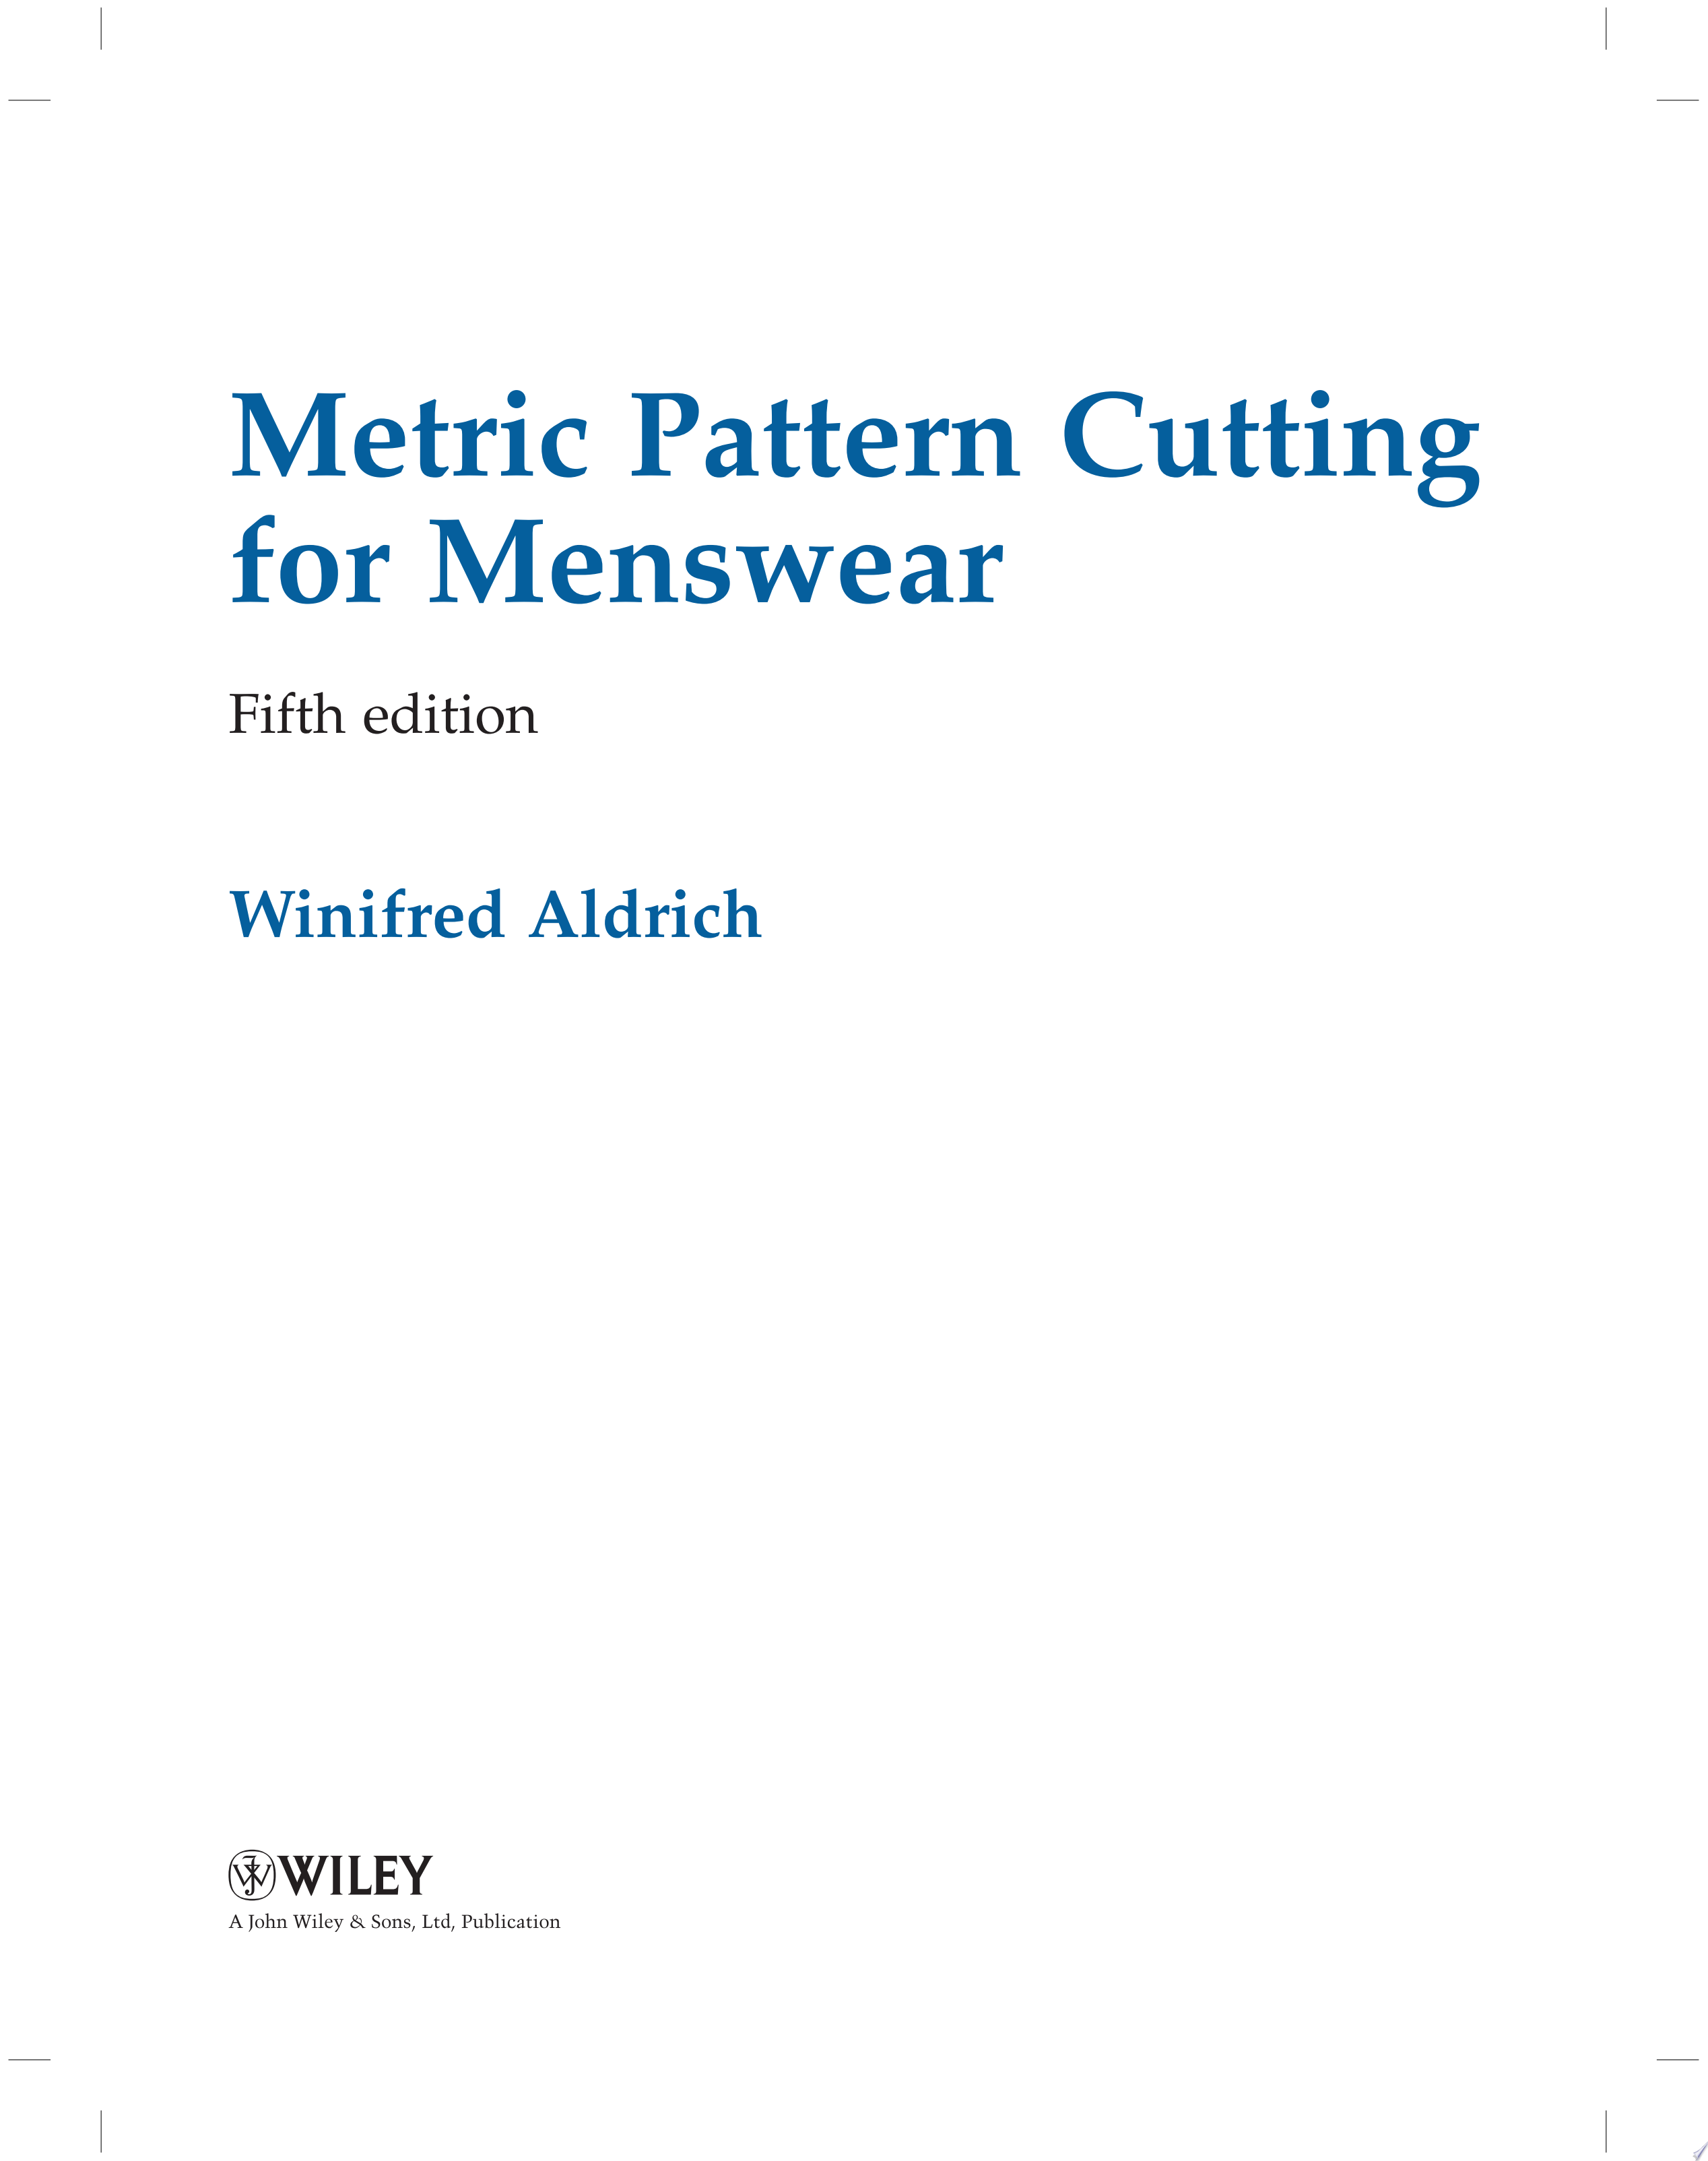 Metric Pattern Cutting for Menswear